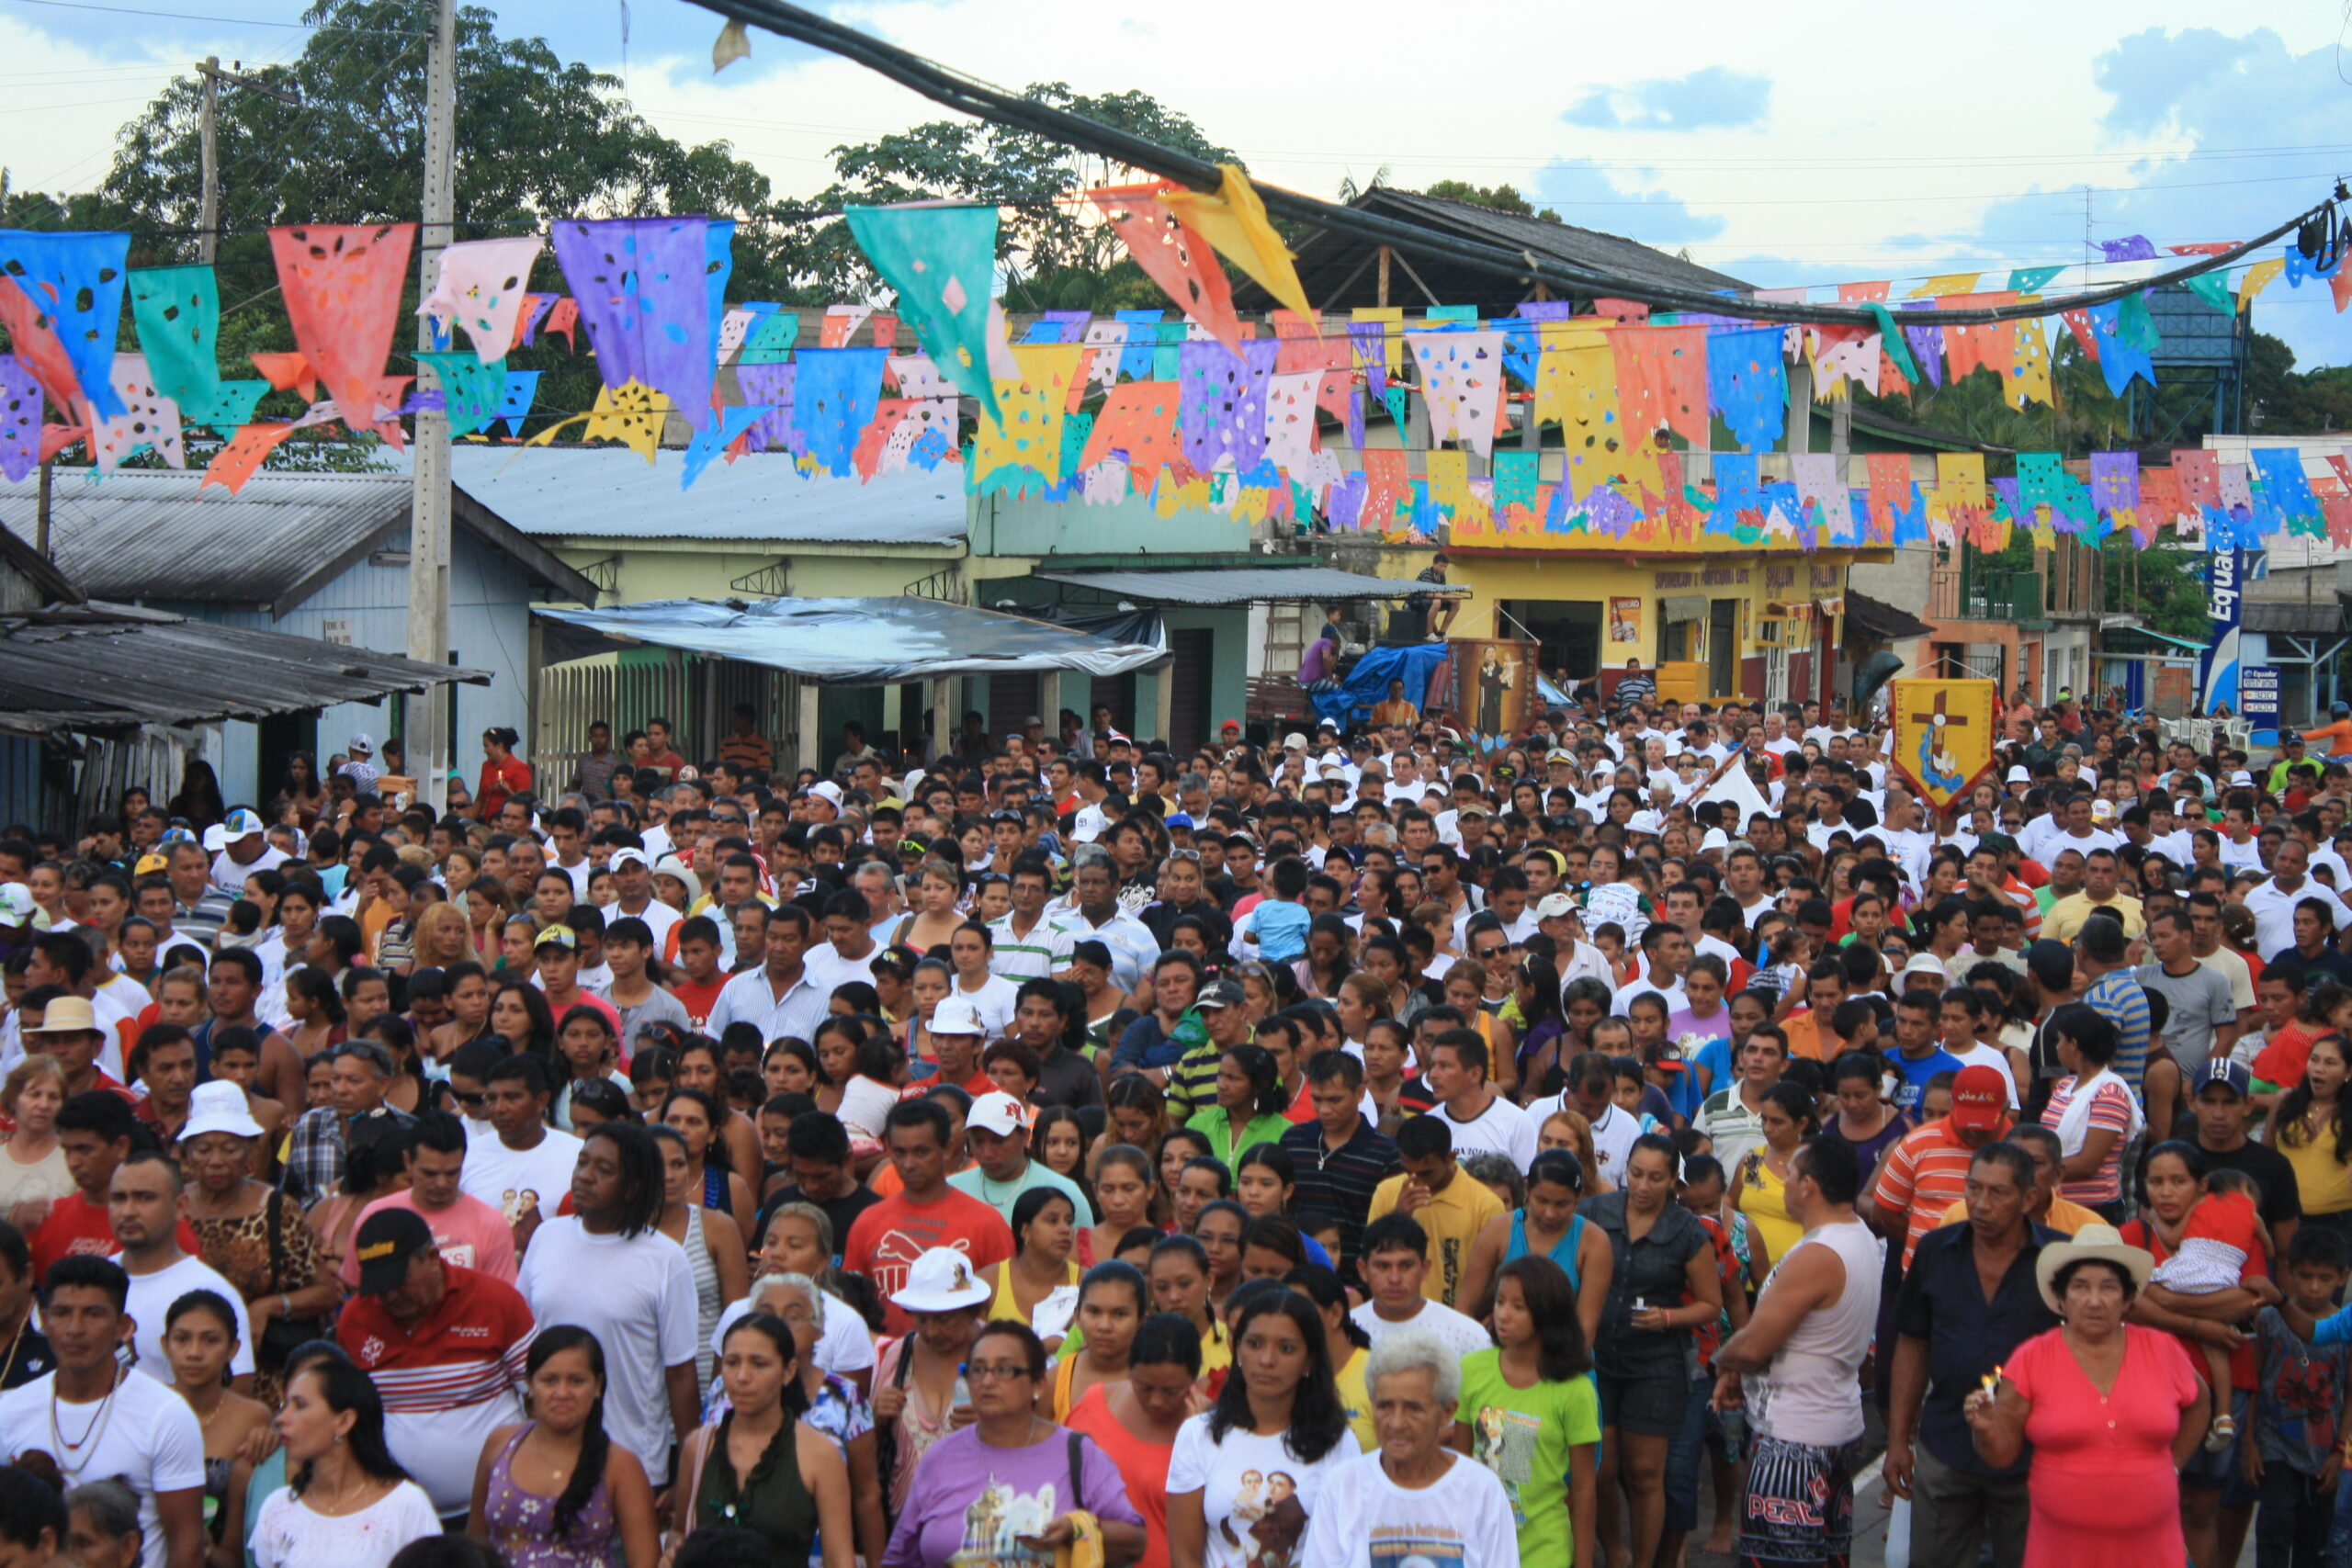 The Santo Antônio festival, in the municipality of Borba, is also a popular cultural event. Many tourists go to thank the saint and make their vows of devotion, for that, they use boats or hotel boats as a means of transport to reach the long awaited event.